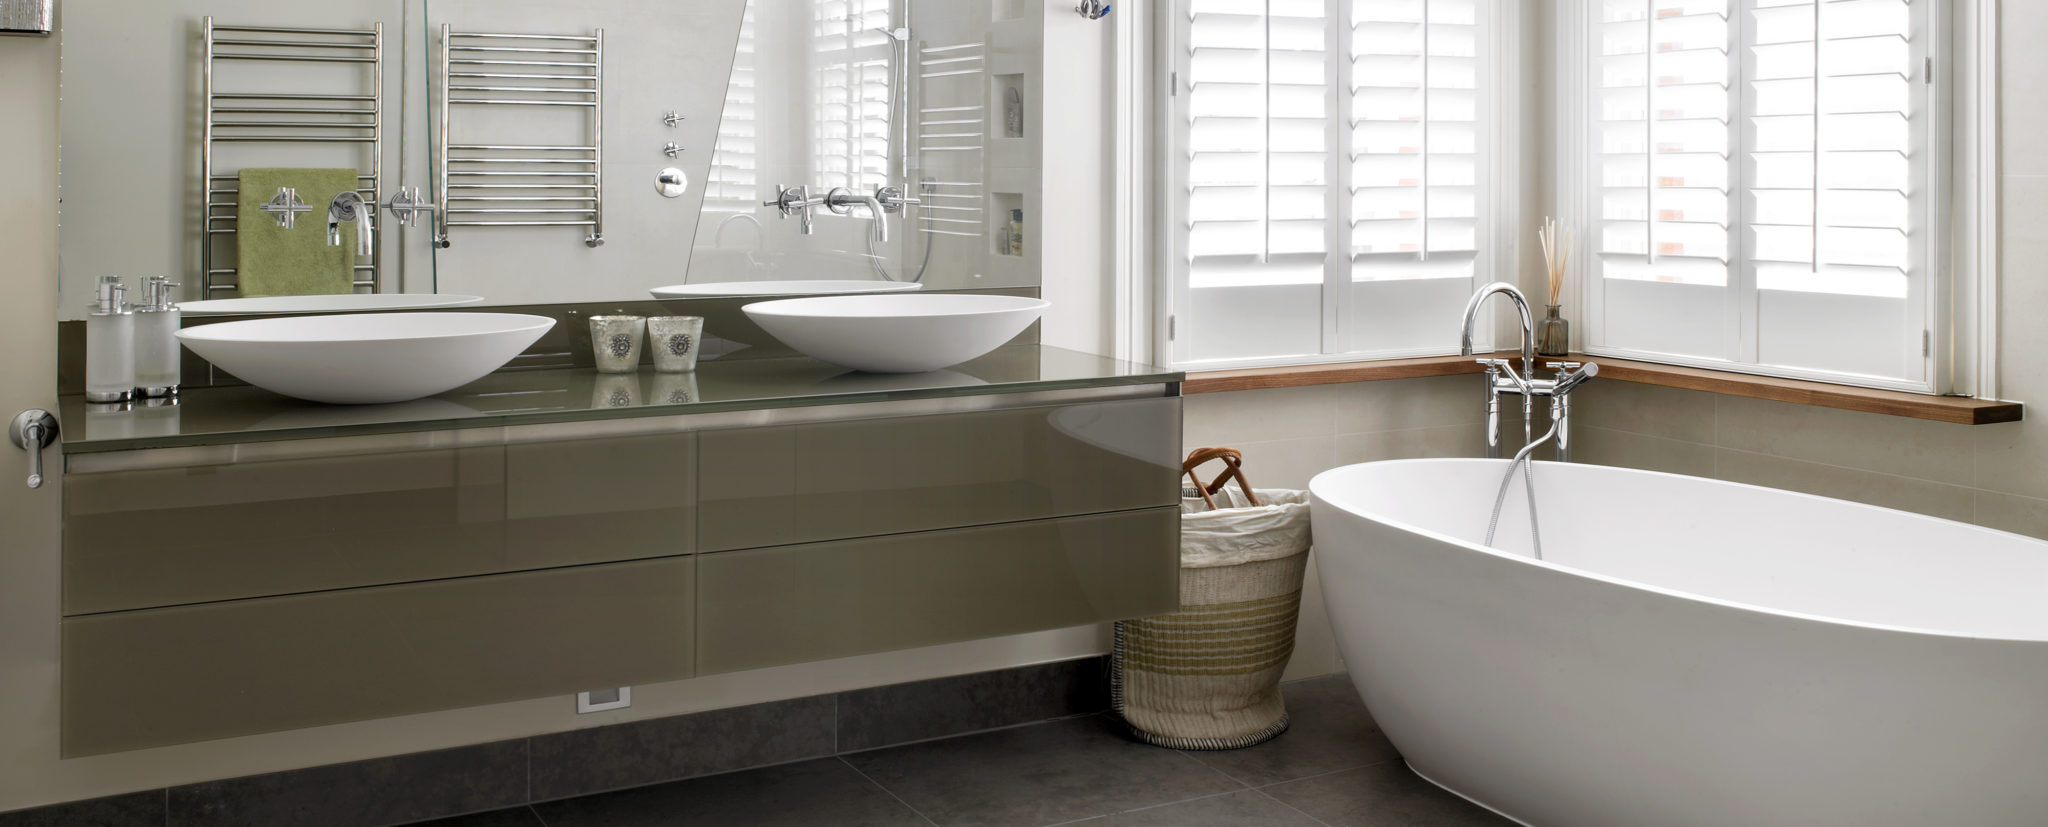 Bespoke modern floating double vanity unit - bespoke fitted bathroom furniture by Brayer